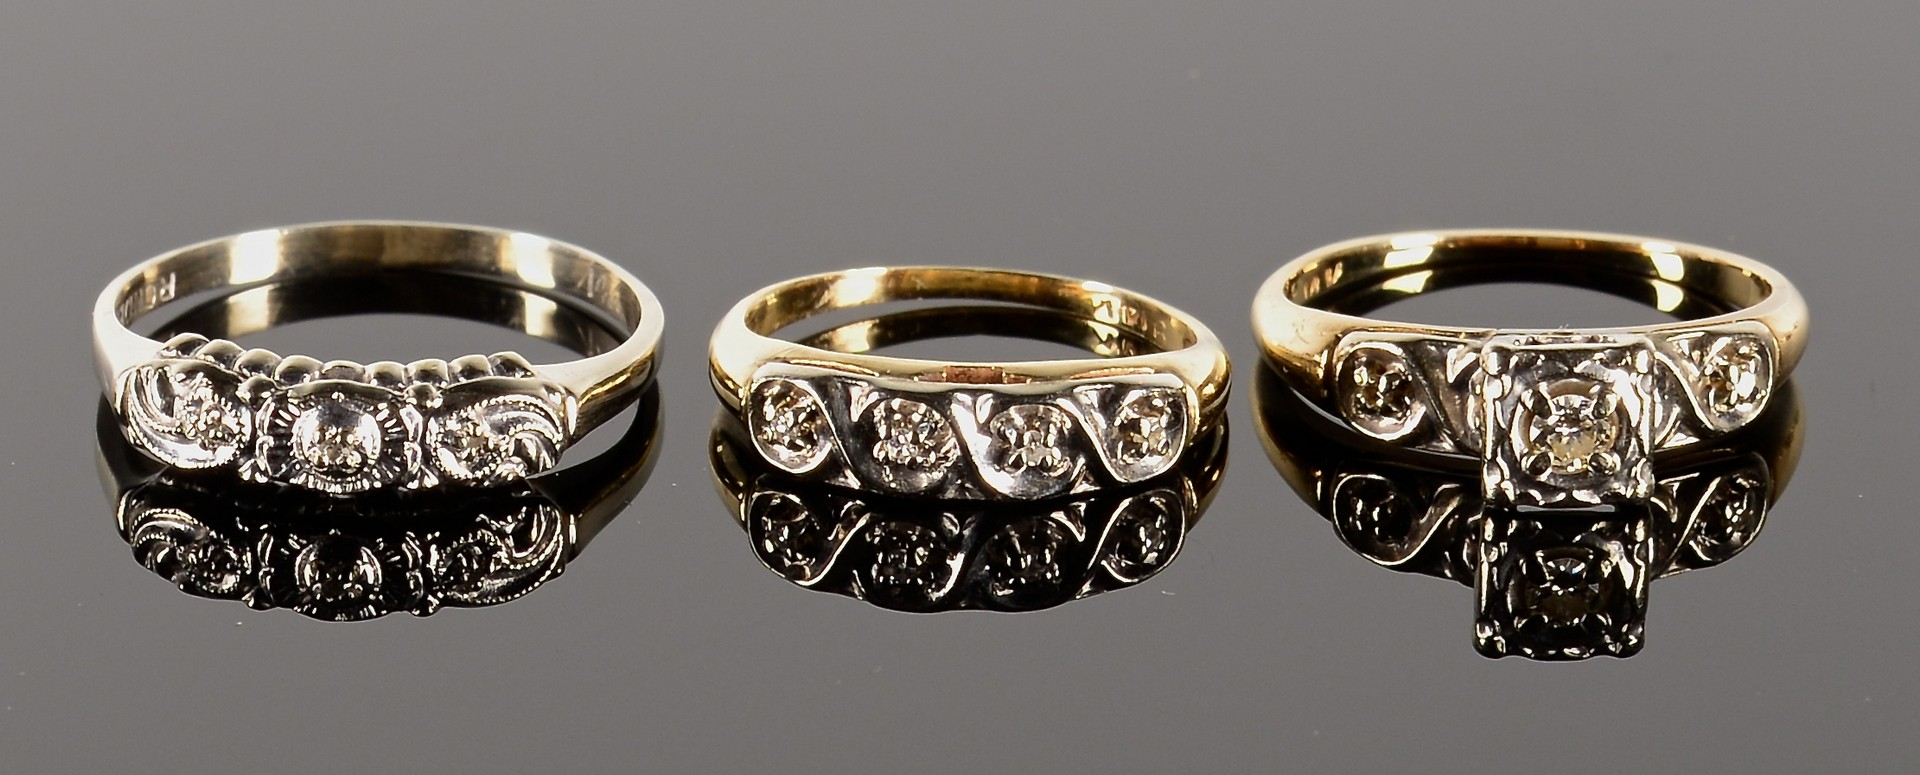 Lot 359: Group of 11 vintage jewelry items